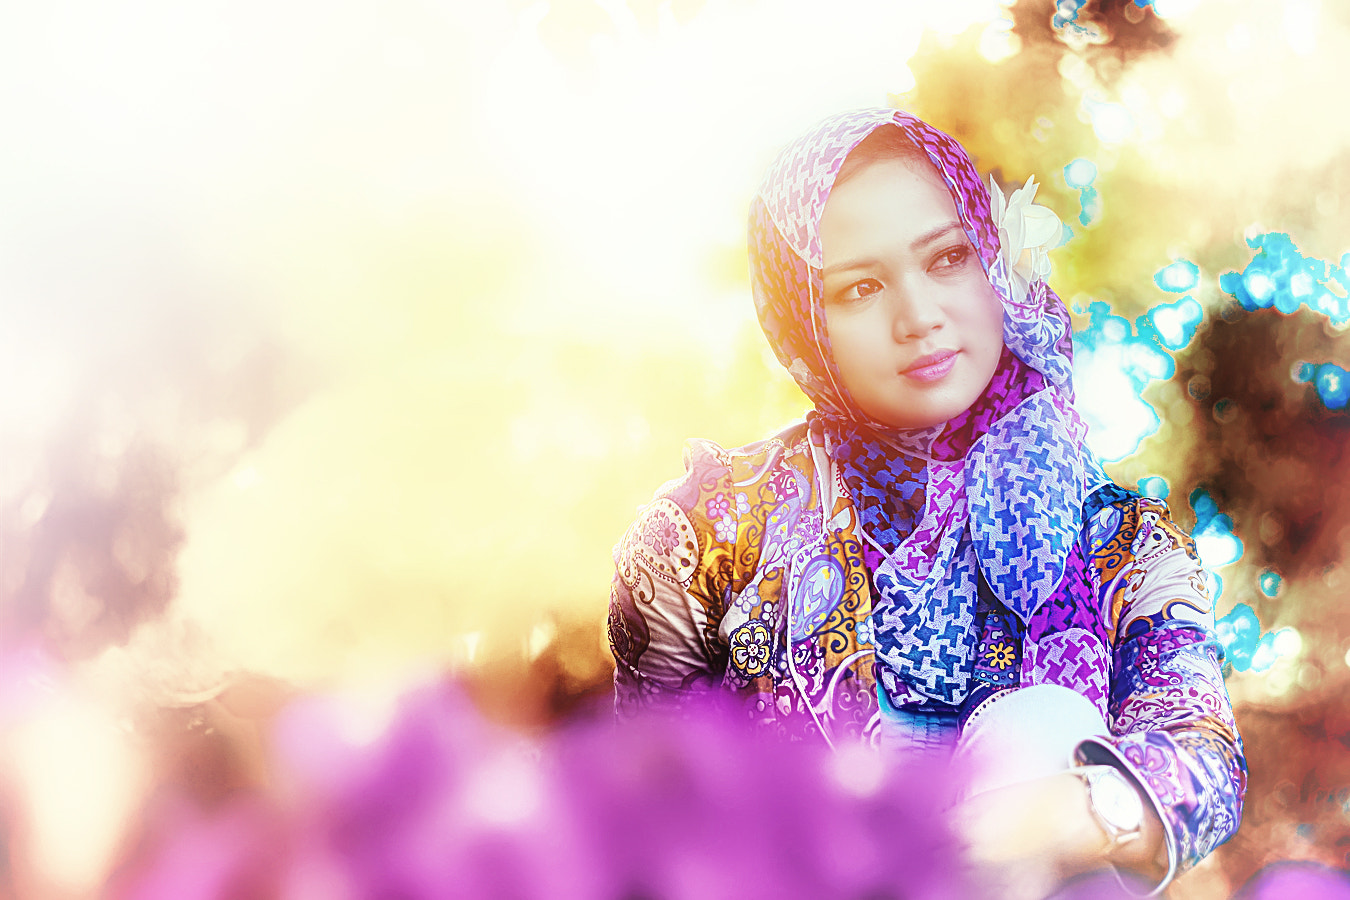 Photograph Bunda#2 by Ade Syamsudin on 500px